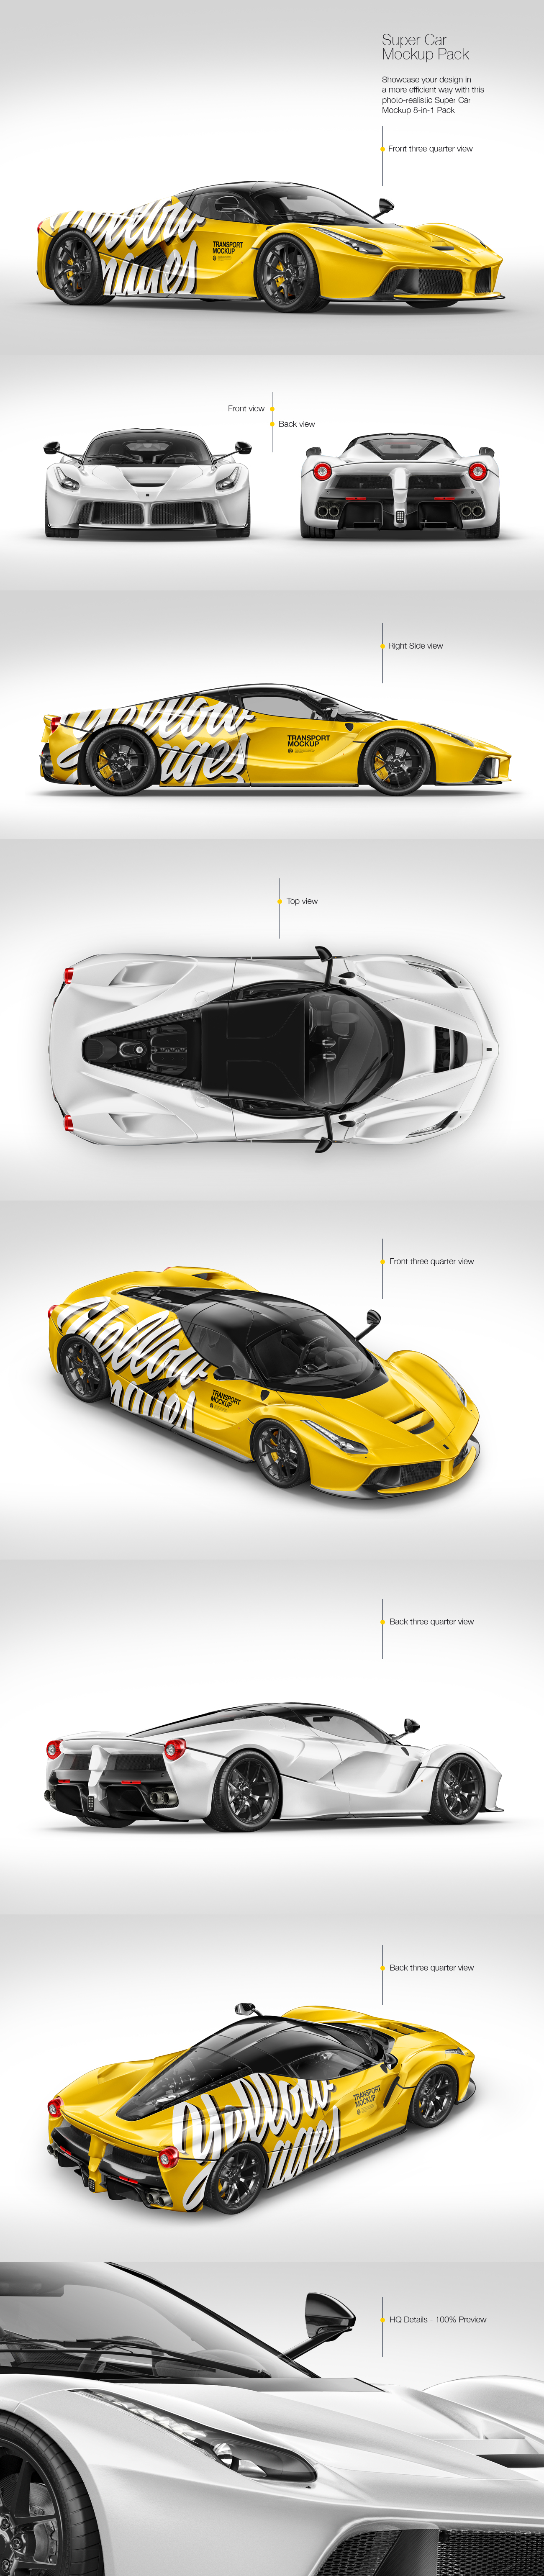 Download Super Car Mockup Pack In Handpicked Sets Of Vehicles On Yellow Images Creative Store PSD Mockup Templates